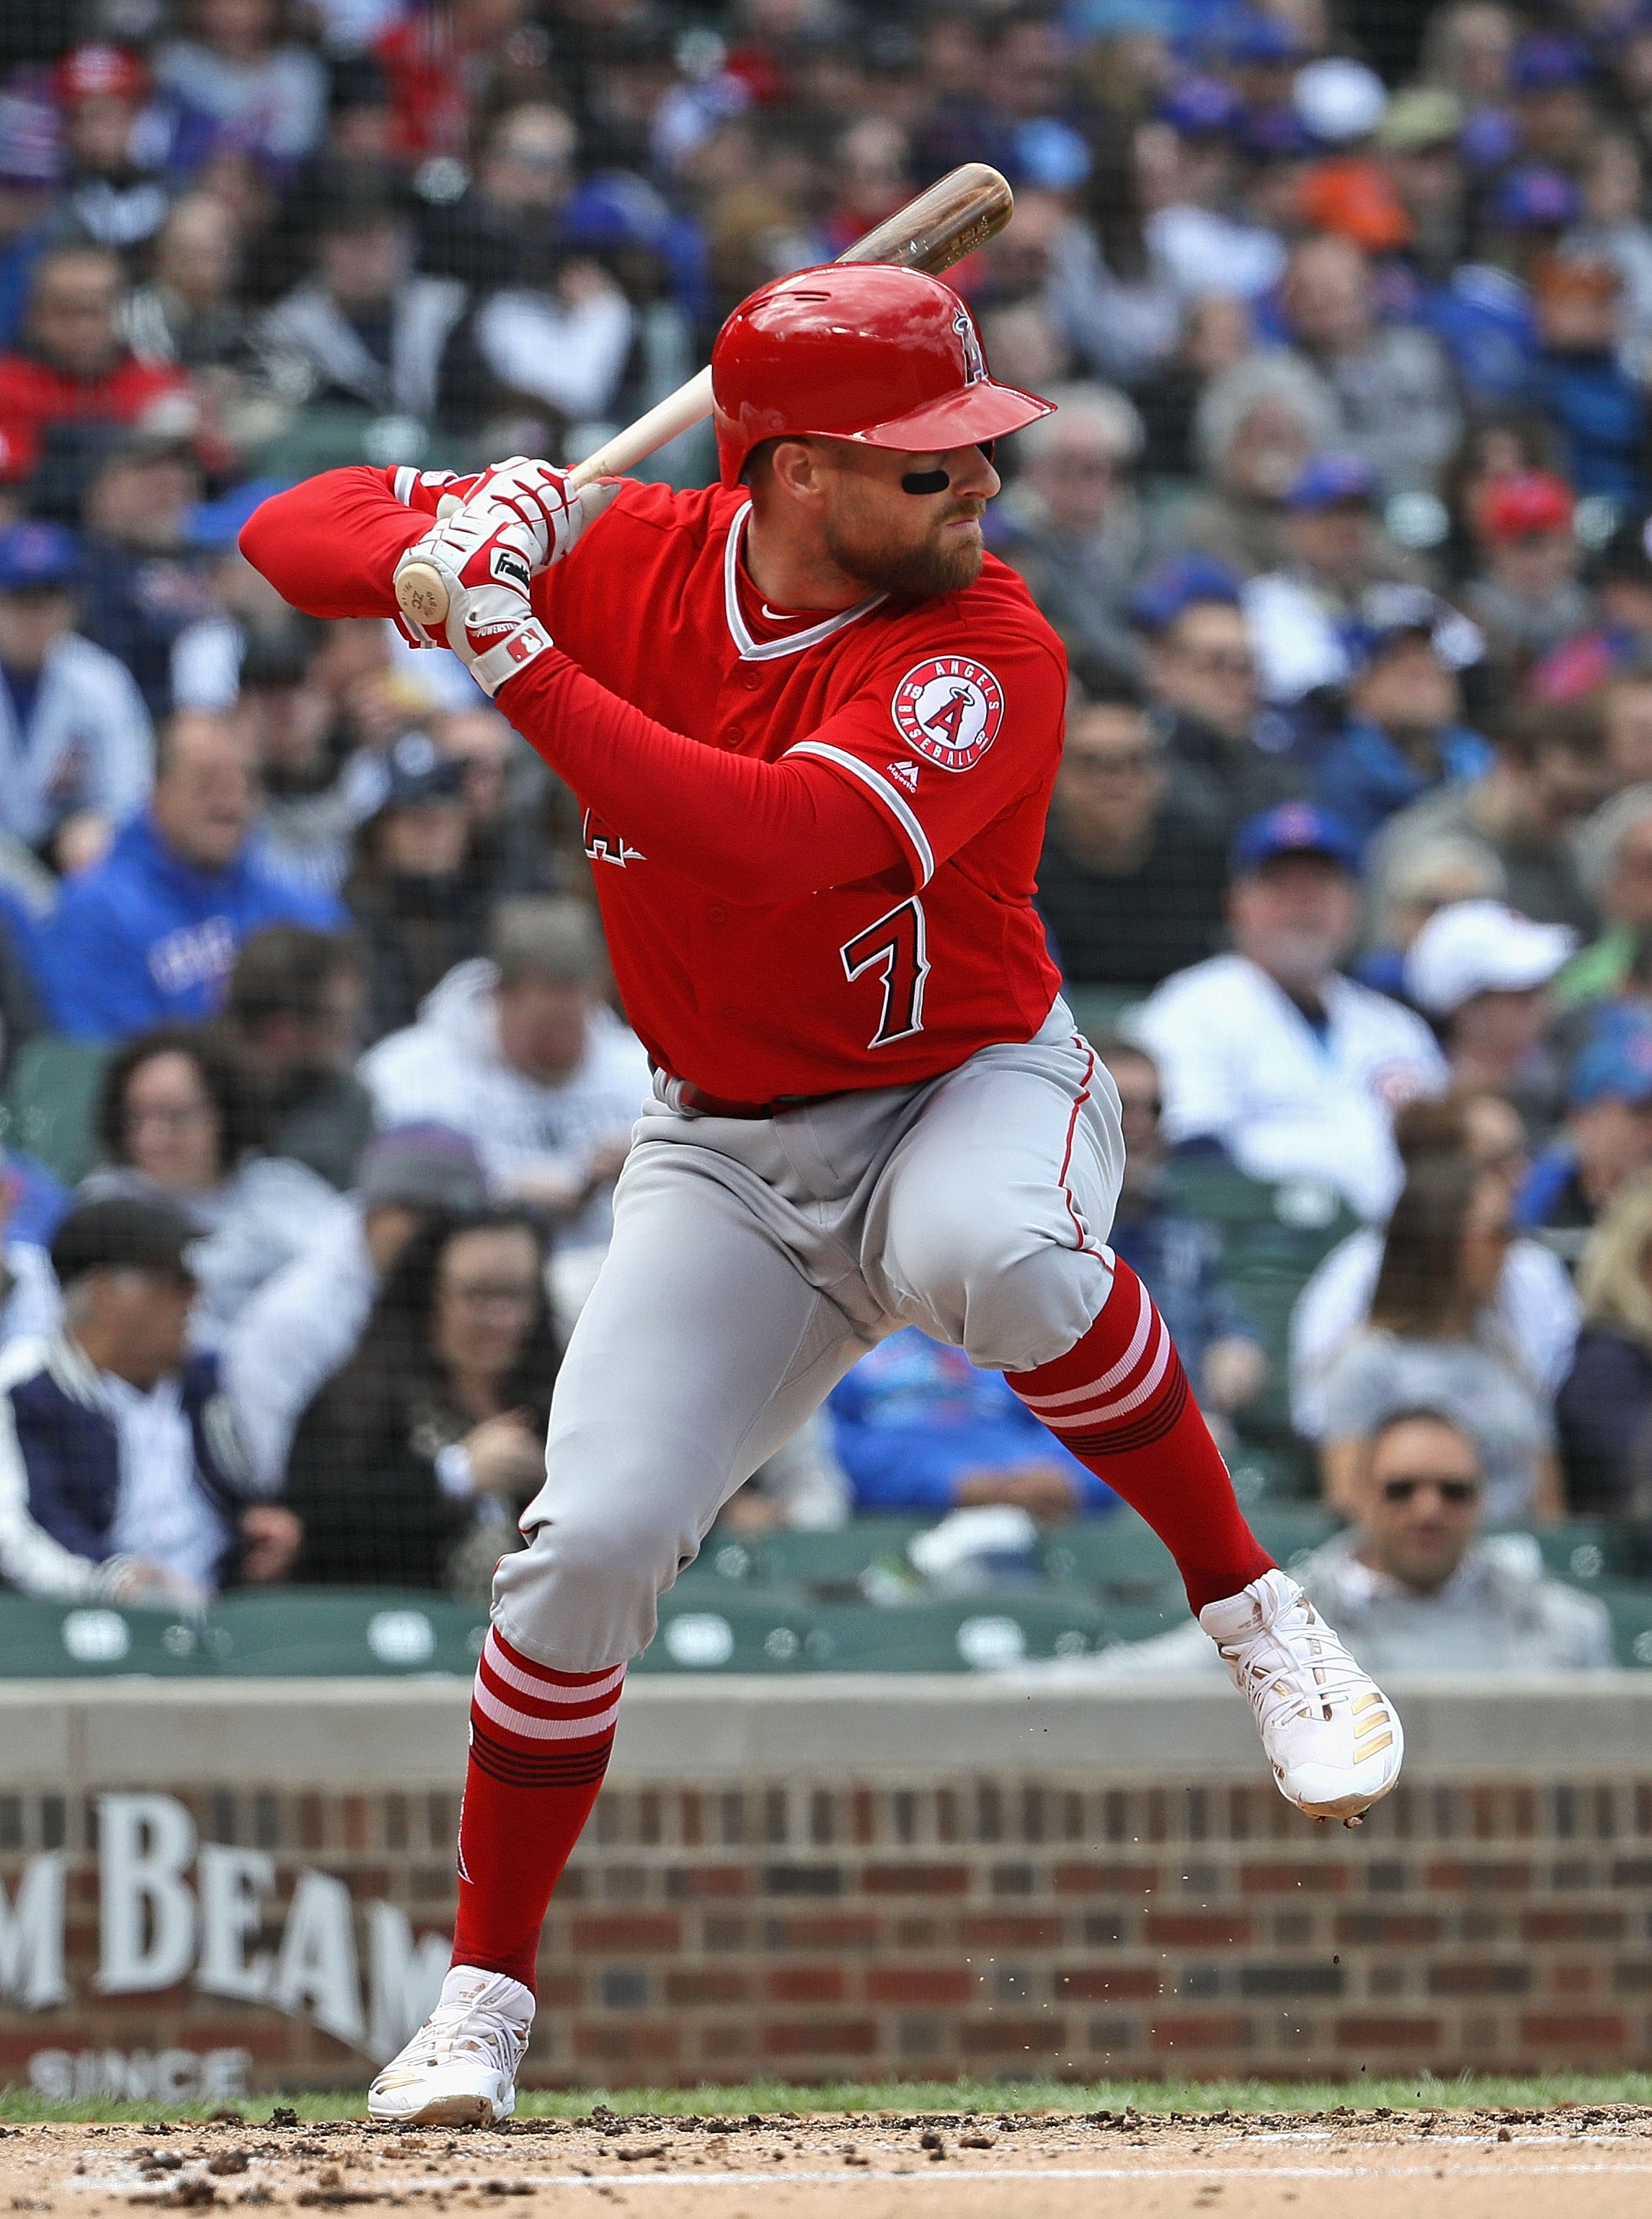 Los Angeles Angels of Anaheim v Chicago Cubs